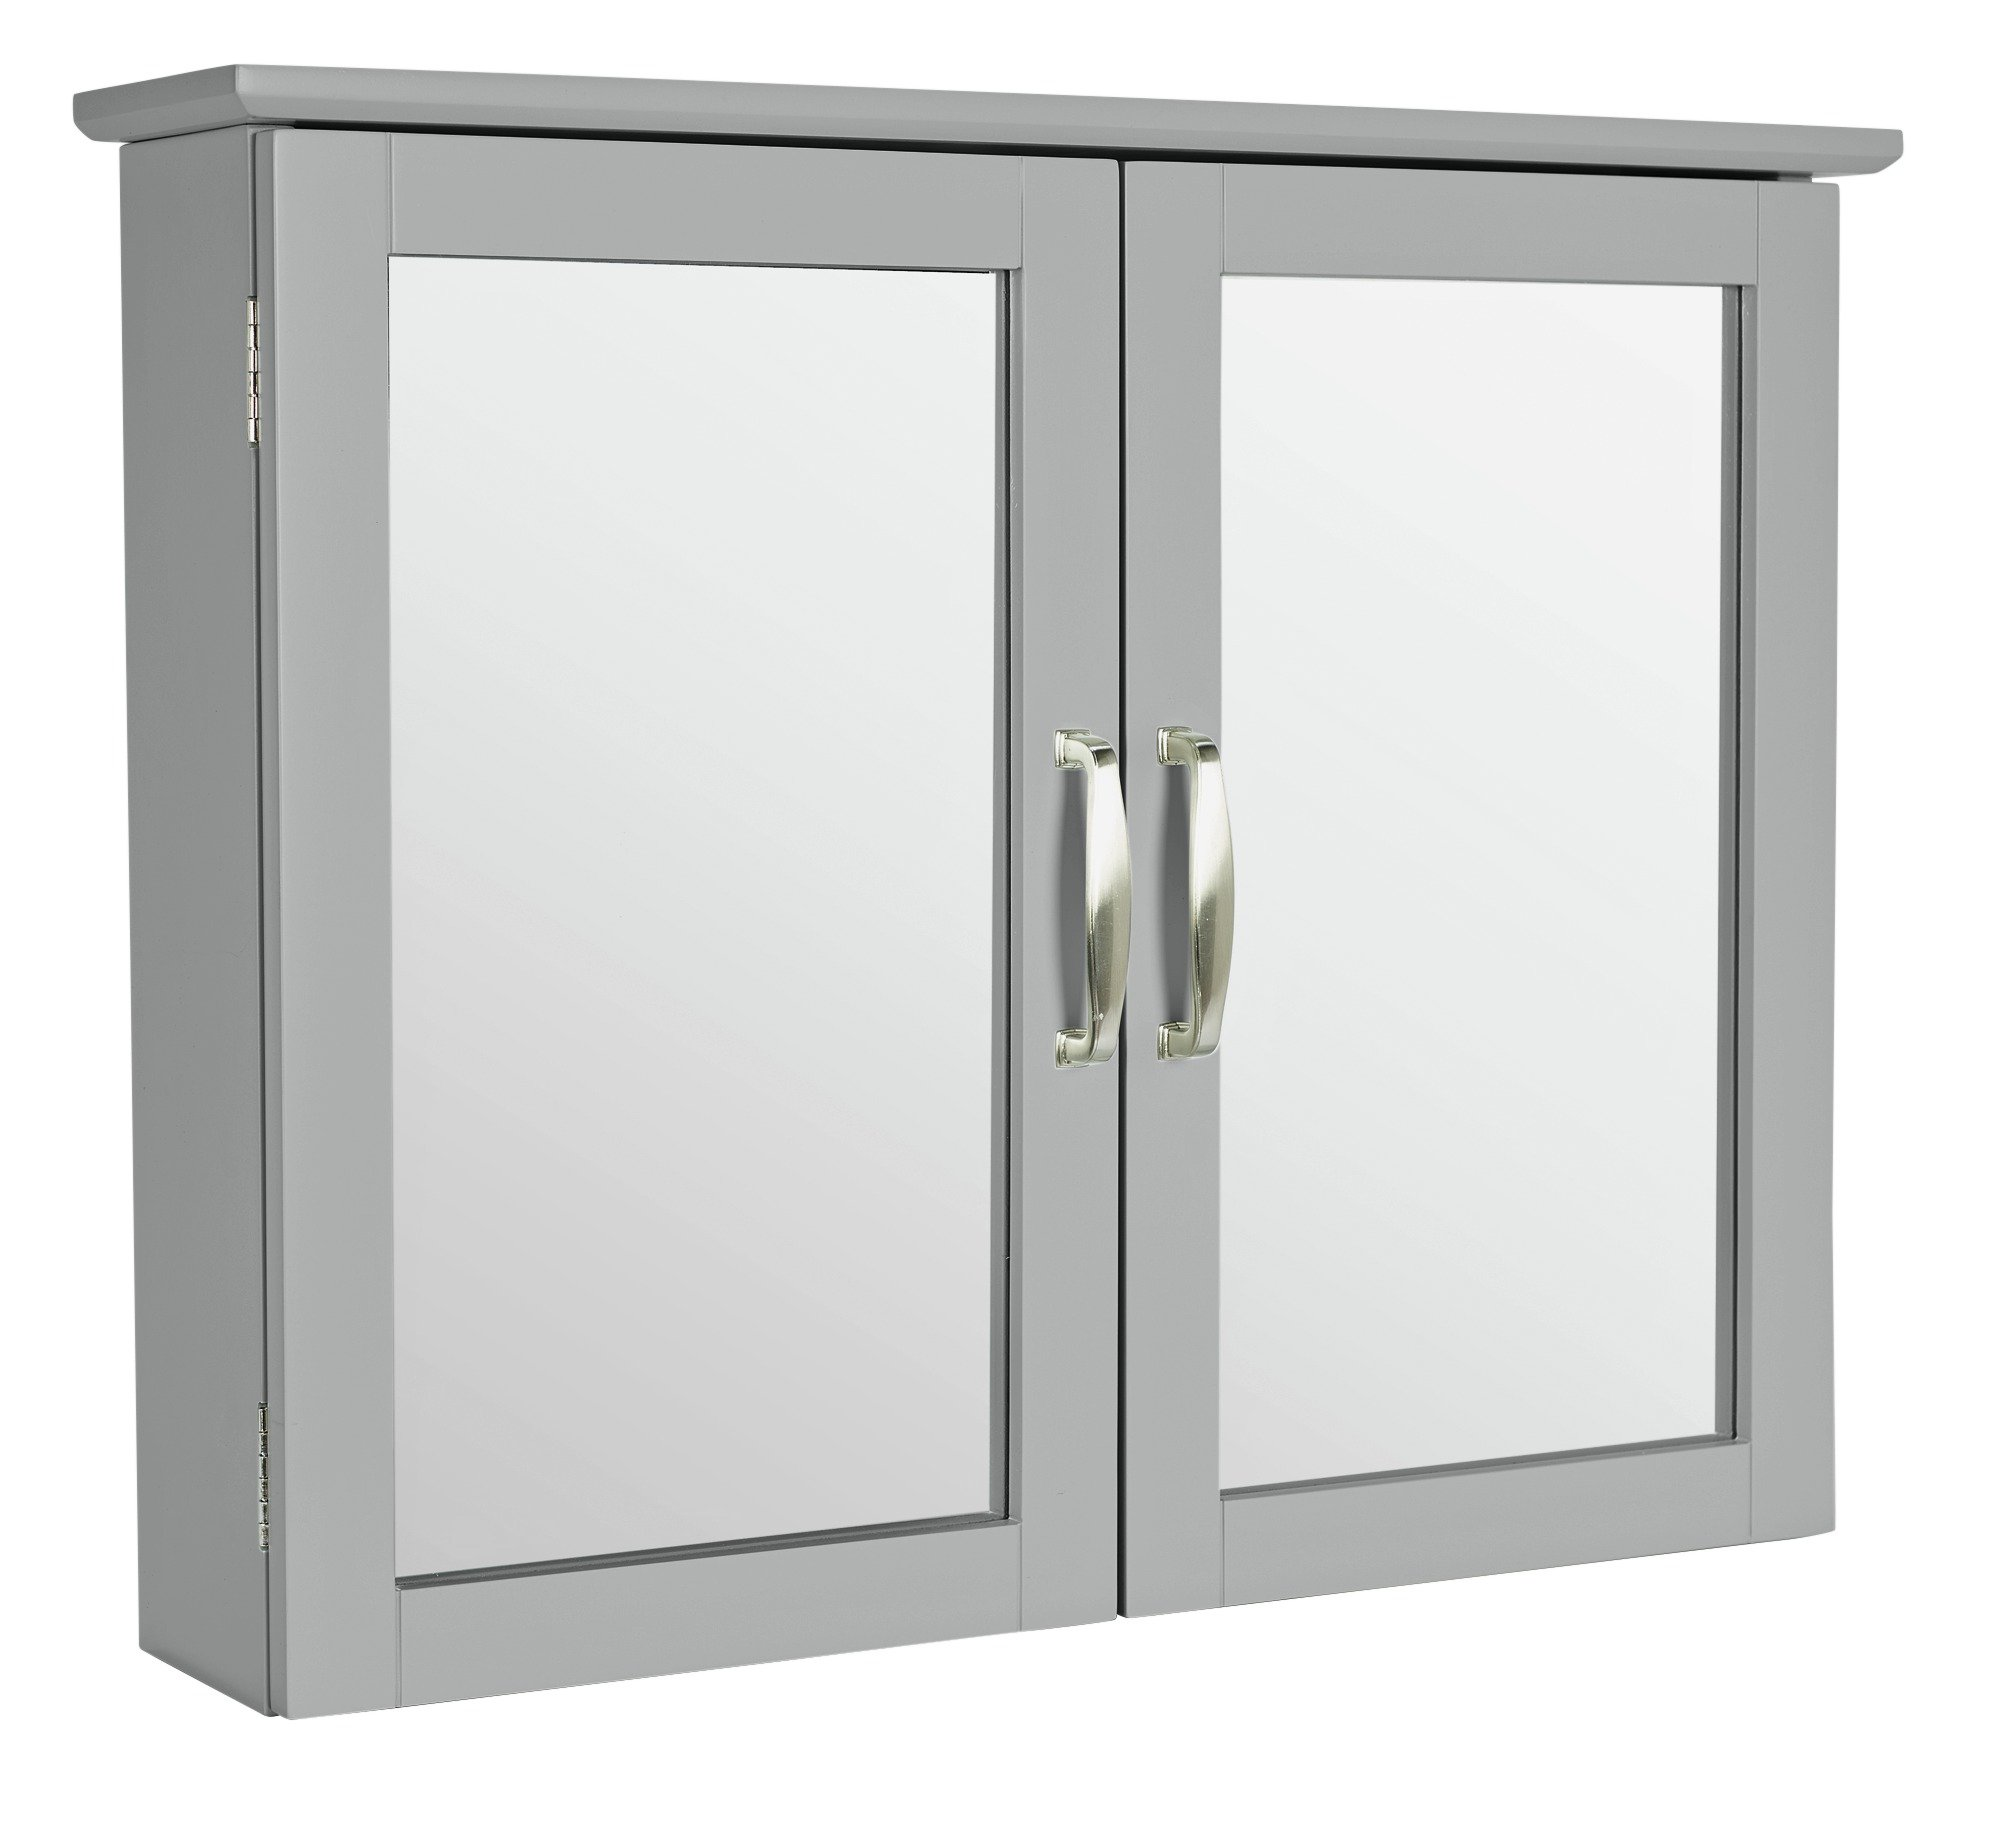 Argos Home New Tongue And Groove Mirrored Wall Cabinet  Grey